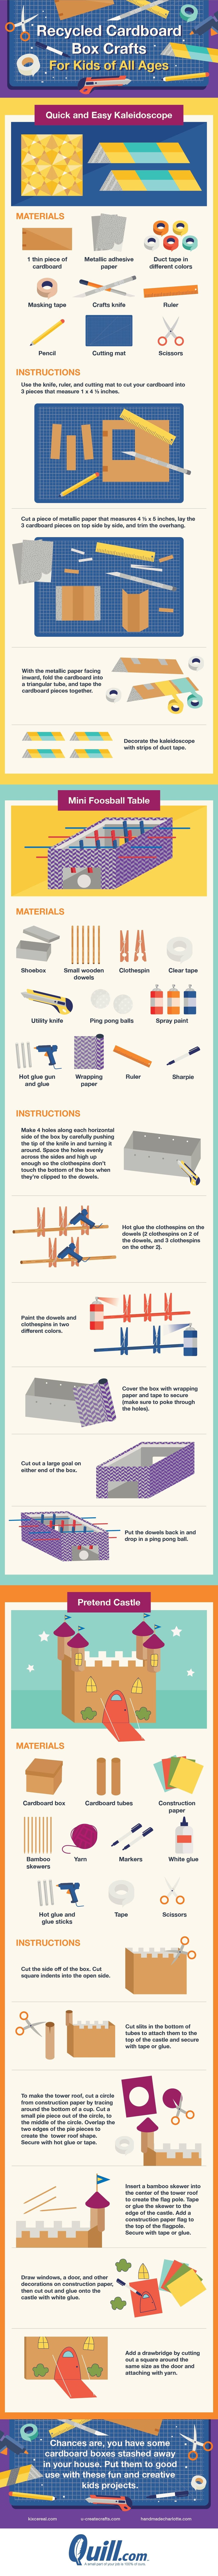 Recycled Cardboard Box Crafts For Kids Of All Ages #Infographic